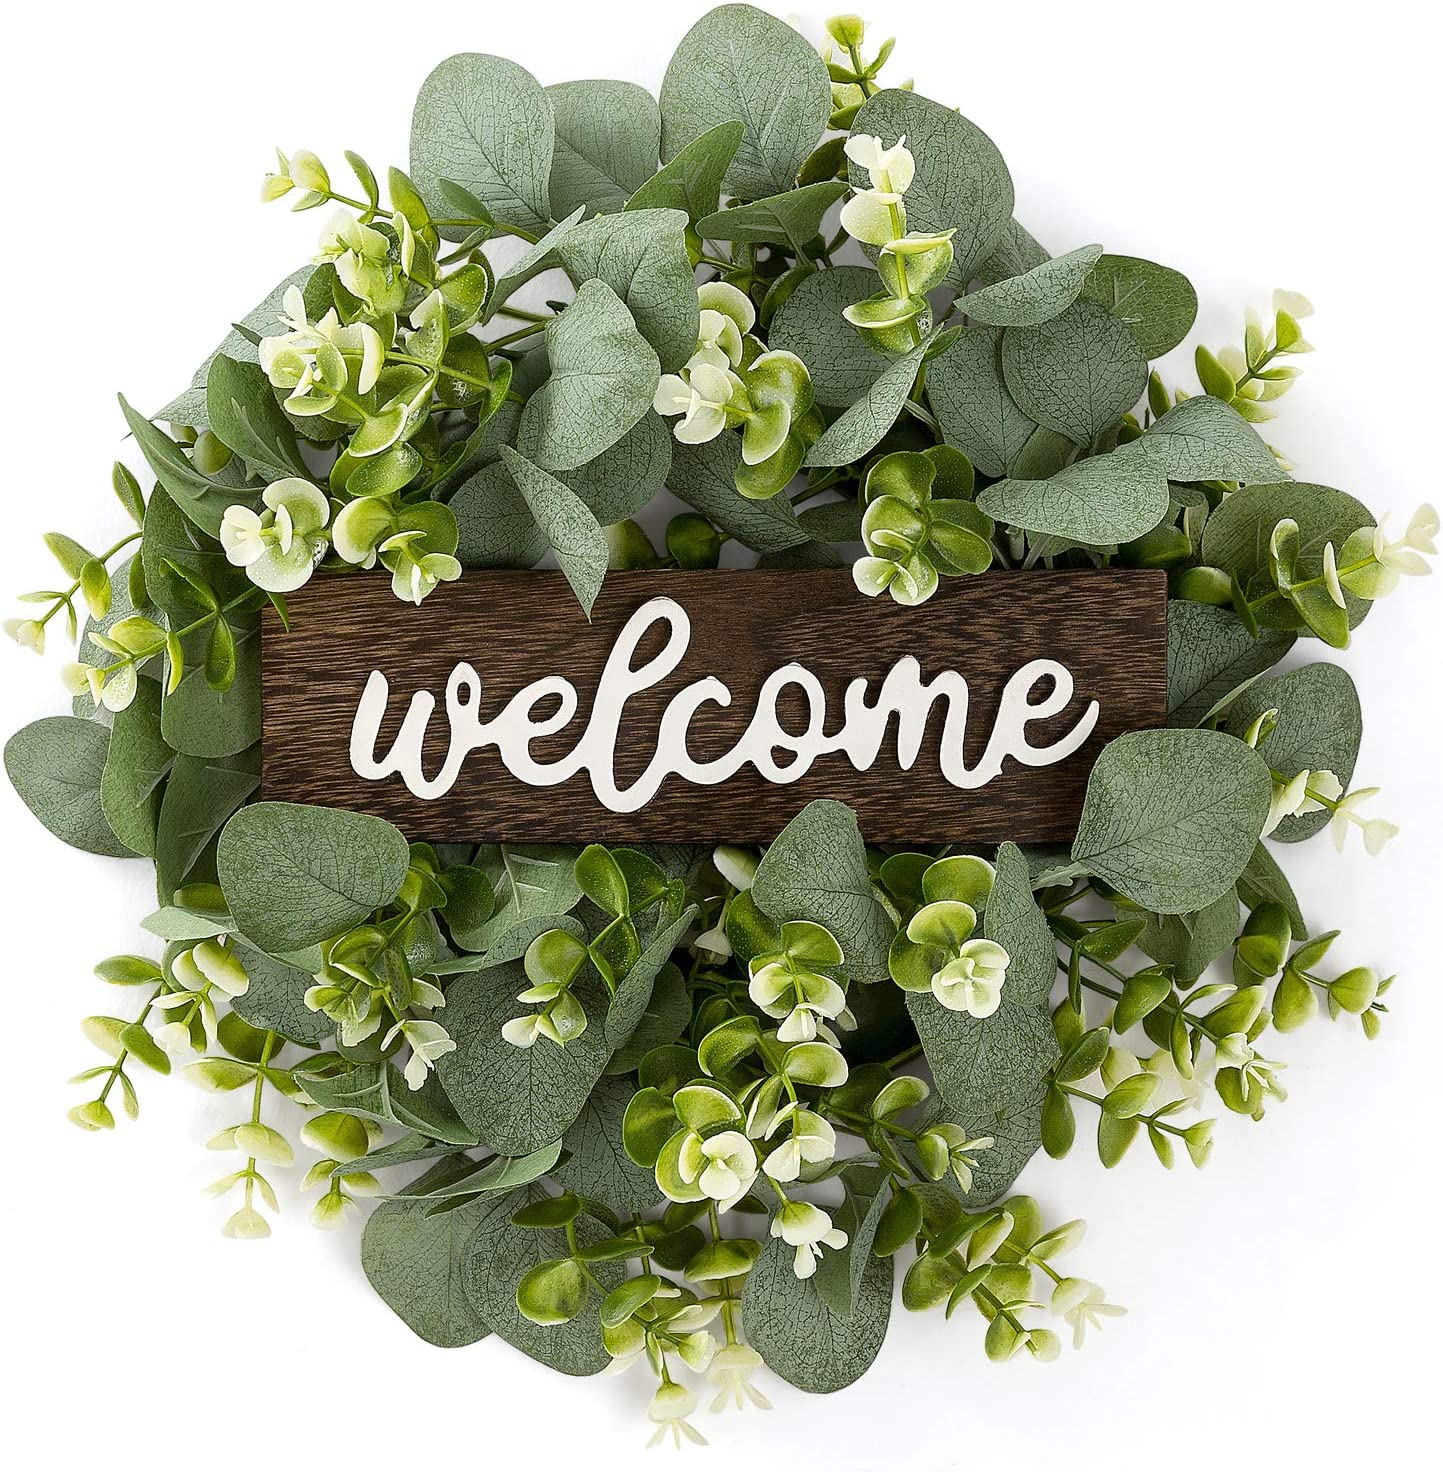 Dahey Welcome Sign with Wreaths Rustic Front Door Decor Wood Hanging Sign with Artificial Eucalyptus 13inch Farmhouse Porch Decorations for Home Wedding Thanksgiving Christmas, Small